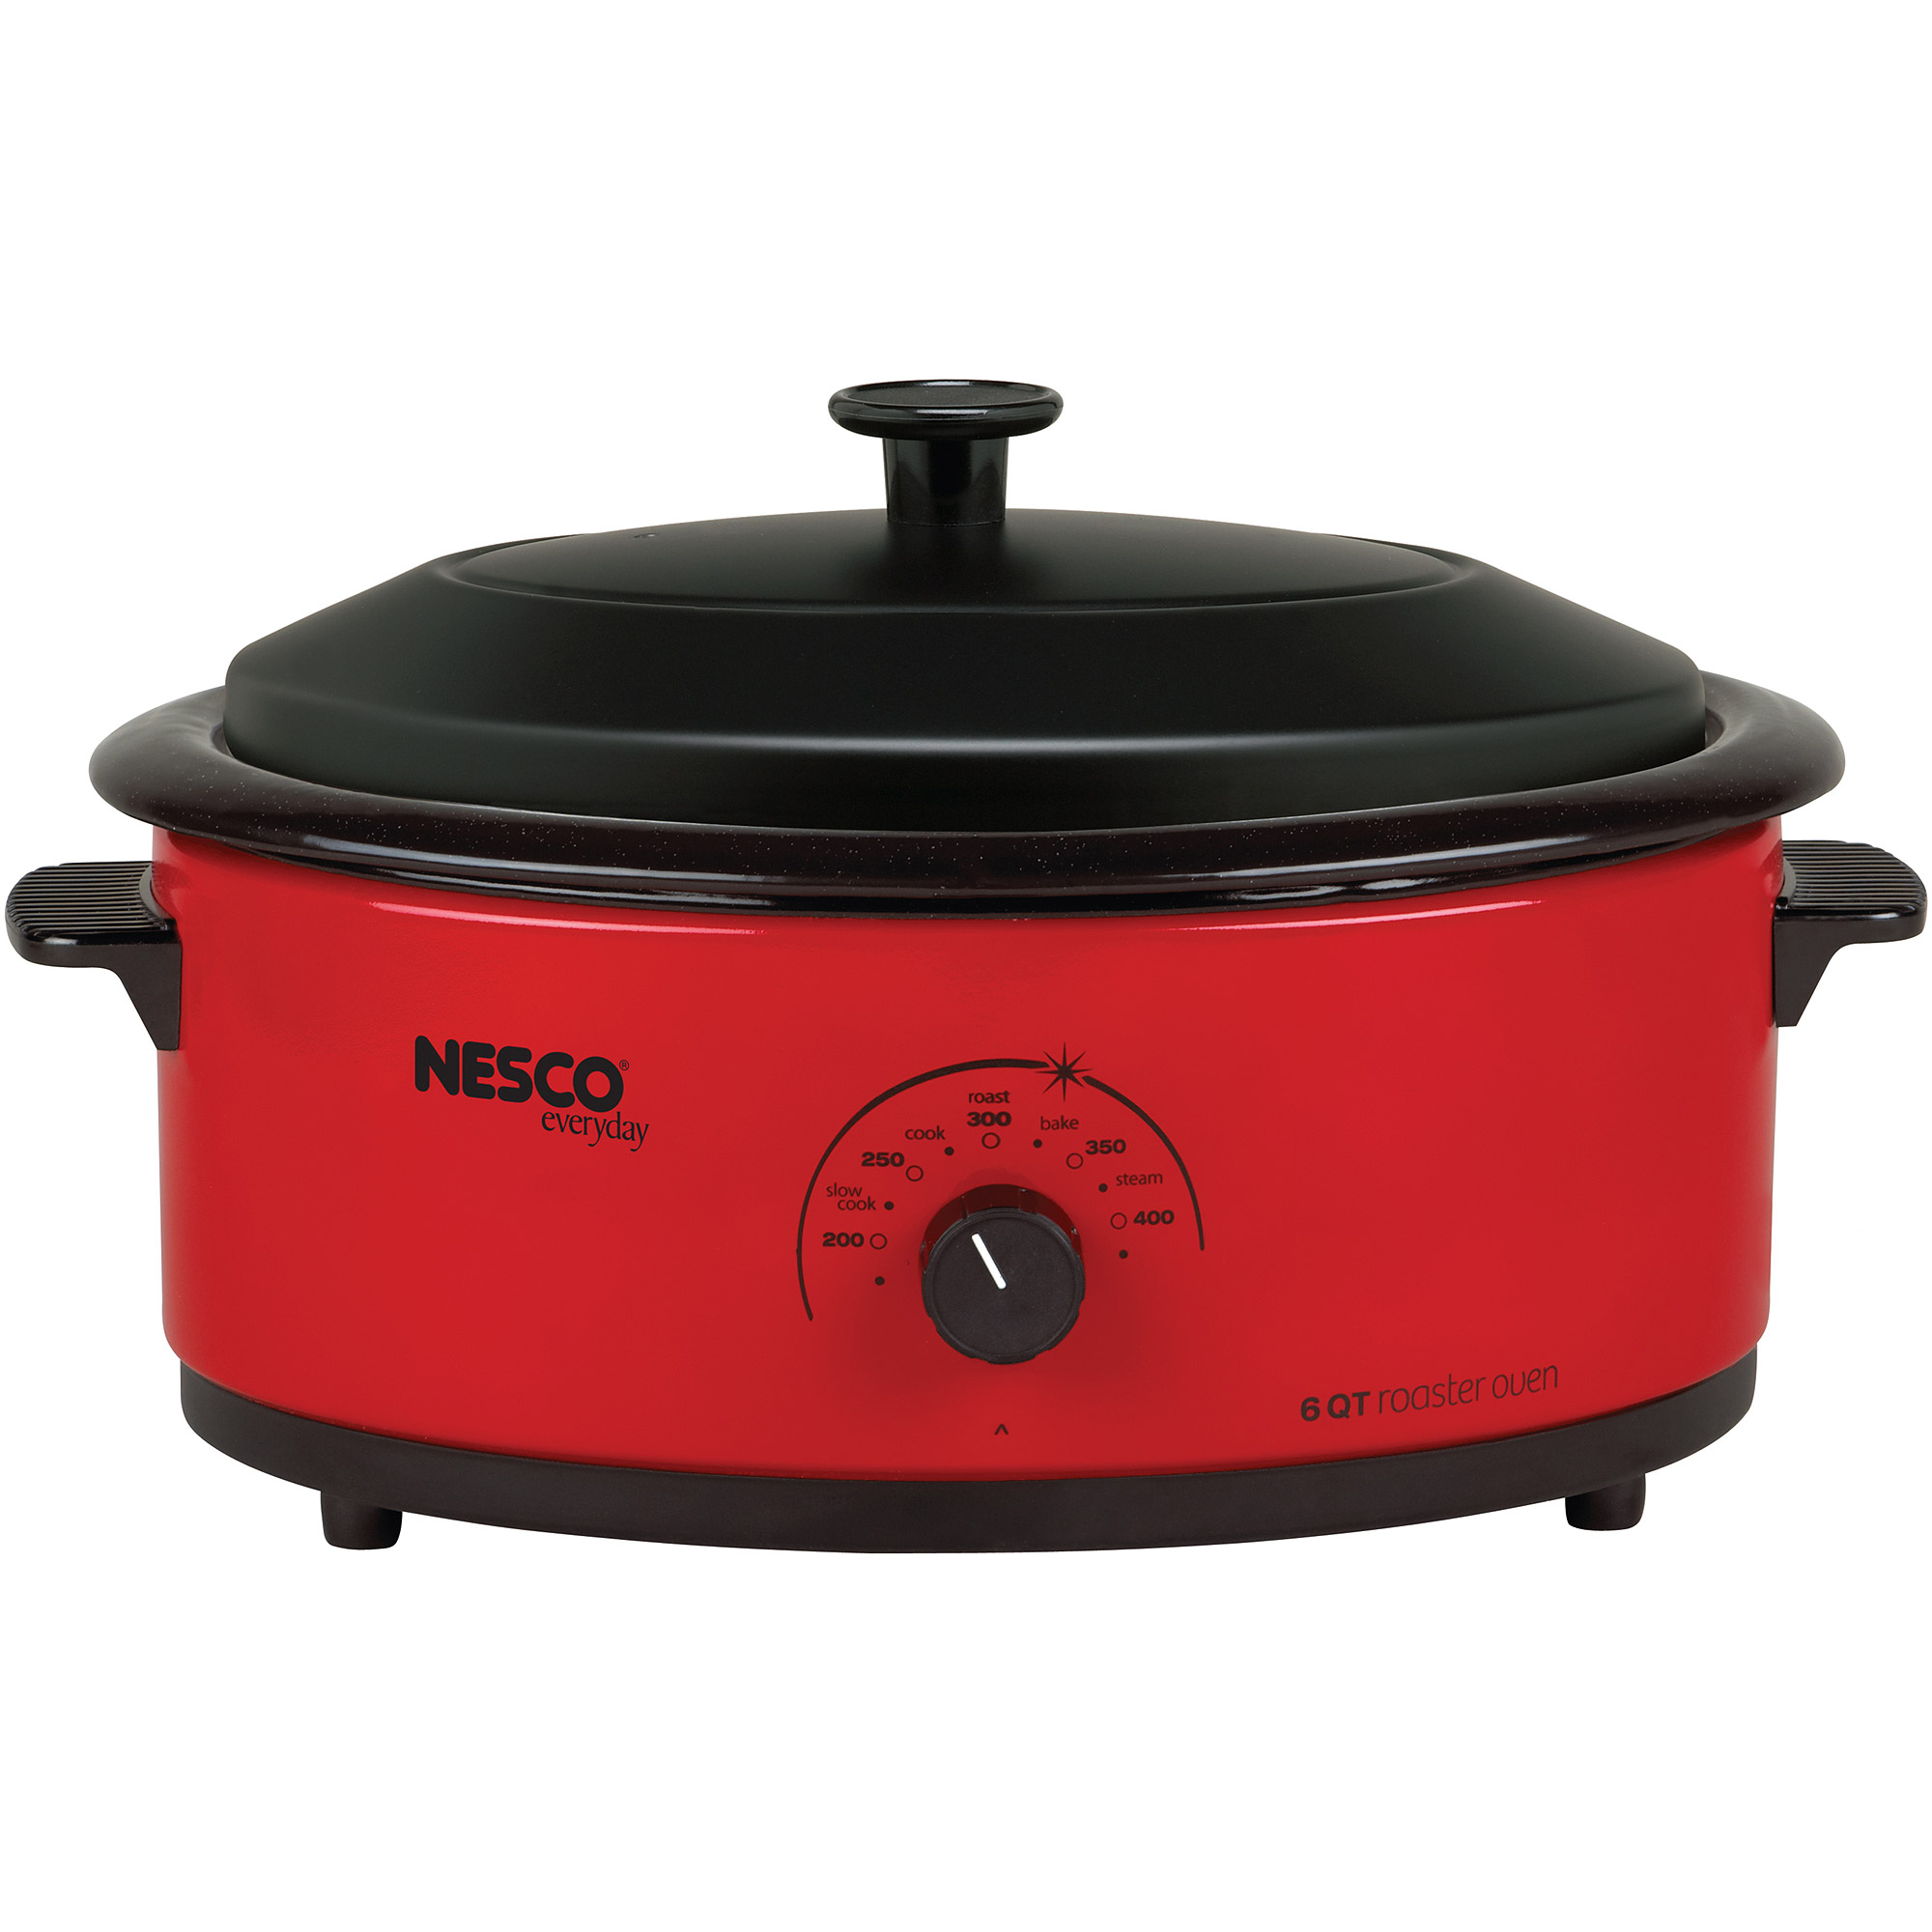 Nesco 6 Quart Capacity Red Roaster oven - Porcelain Cookwell - Black Lid